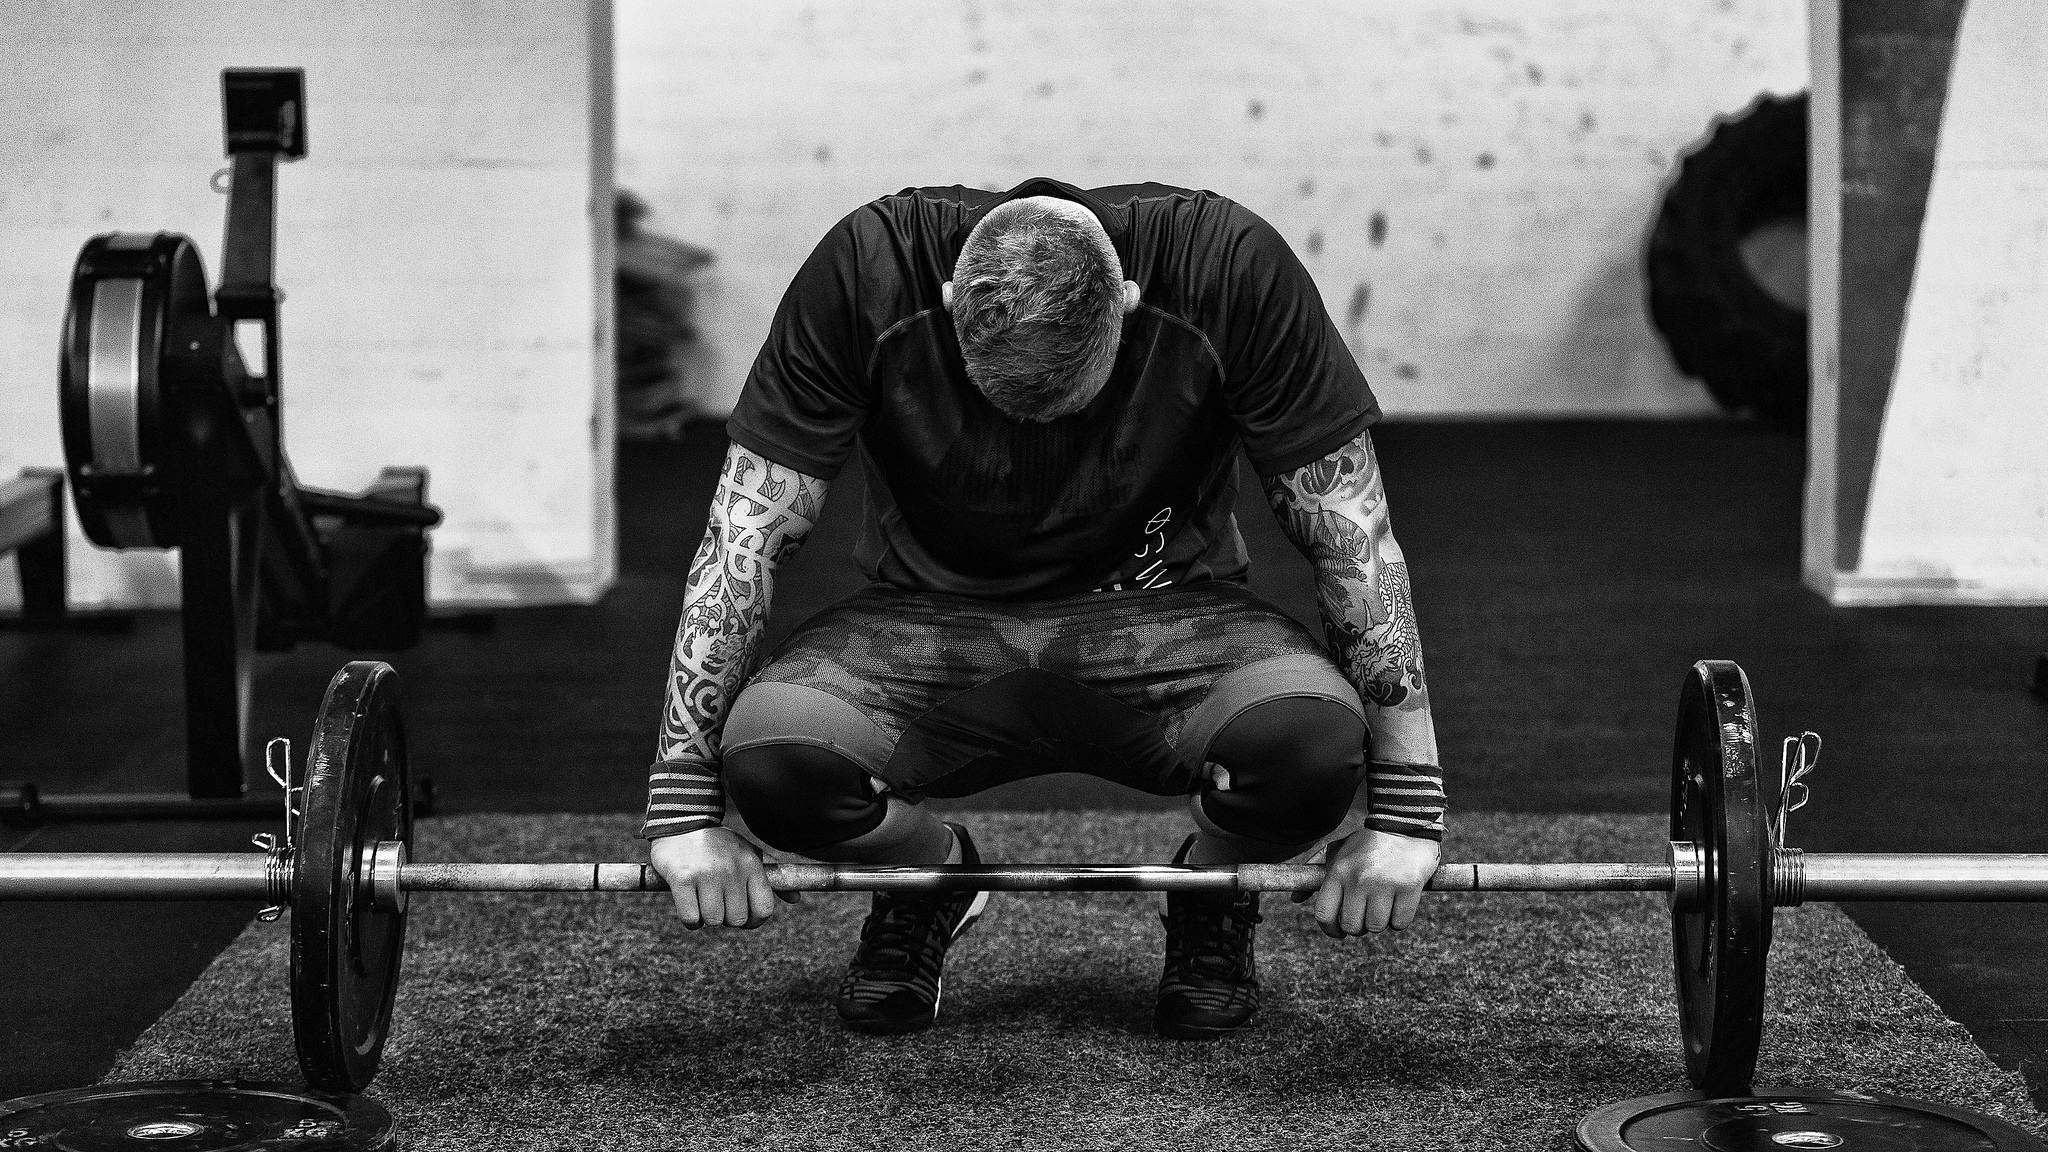 crossfit wallpapers 67 images